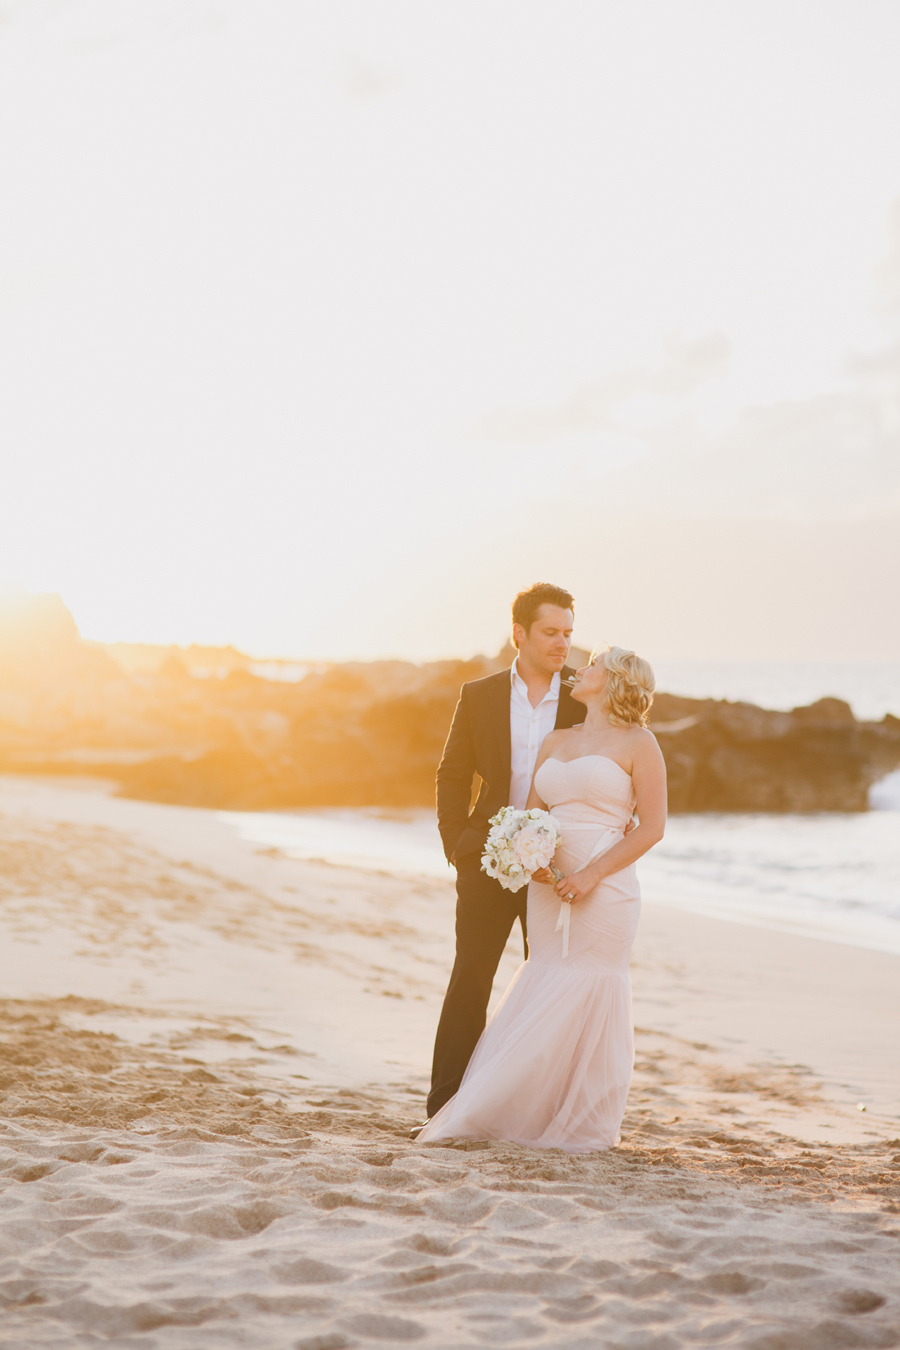 Ocean Beach West Maui Elopement Photographer